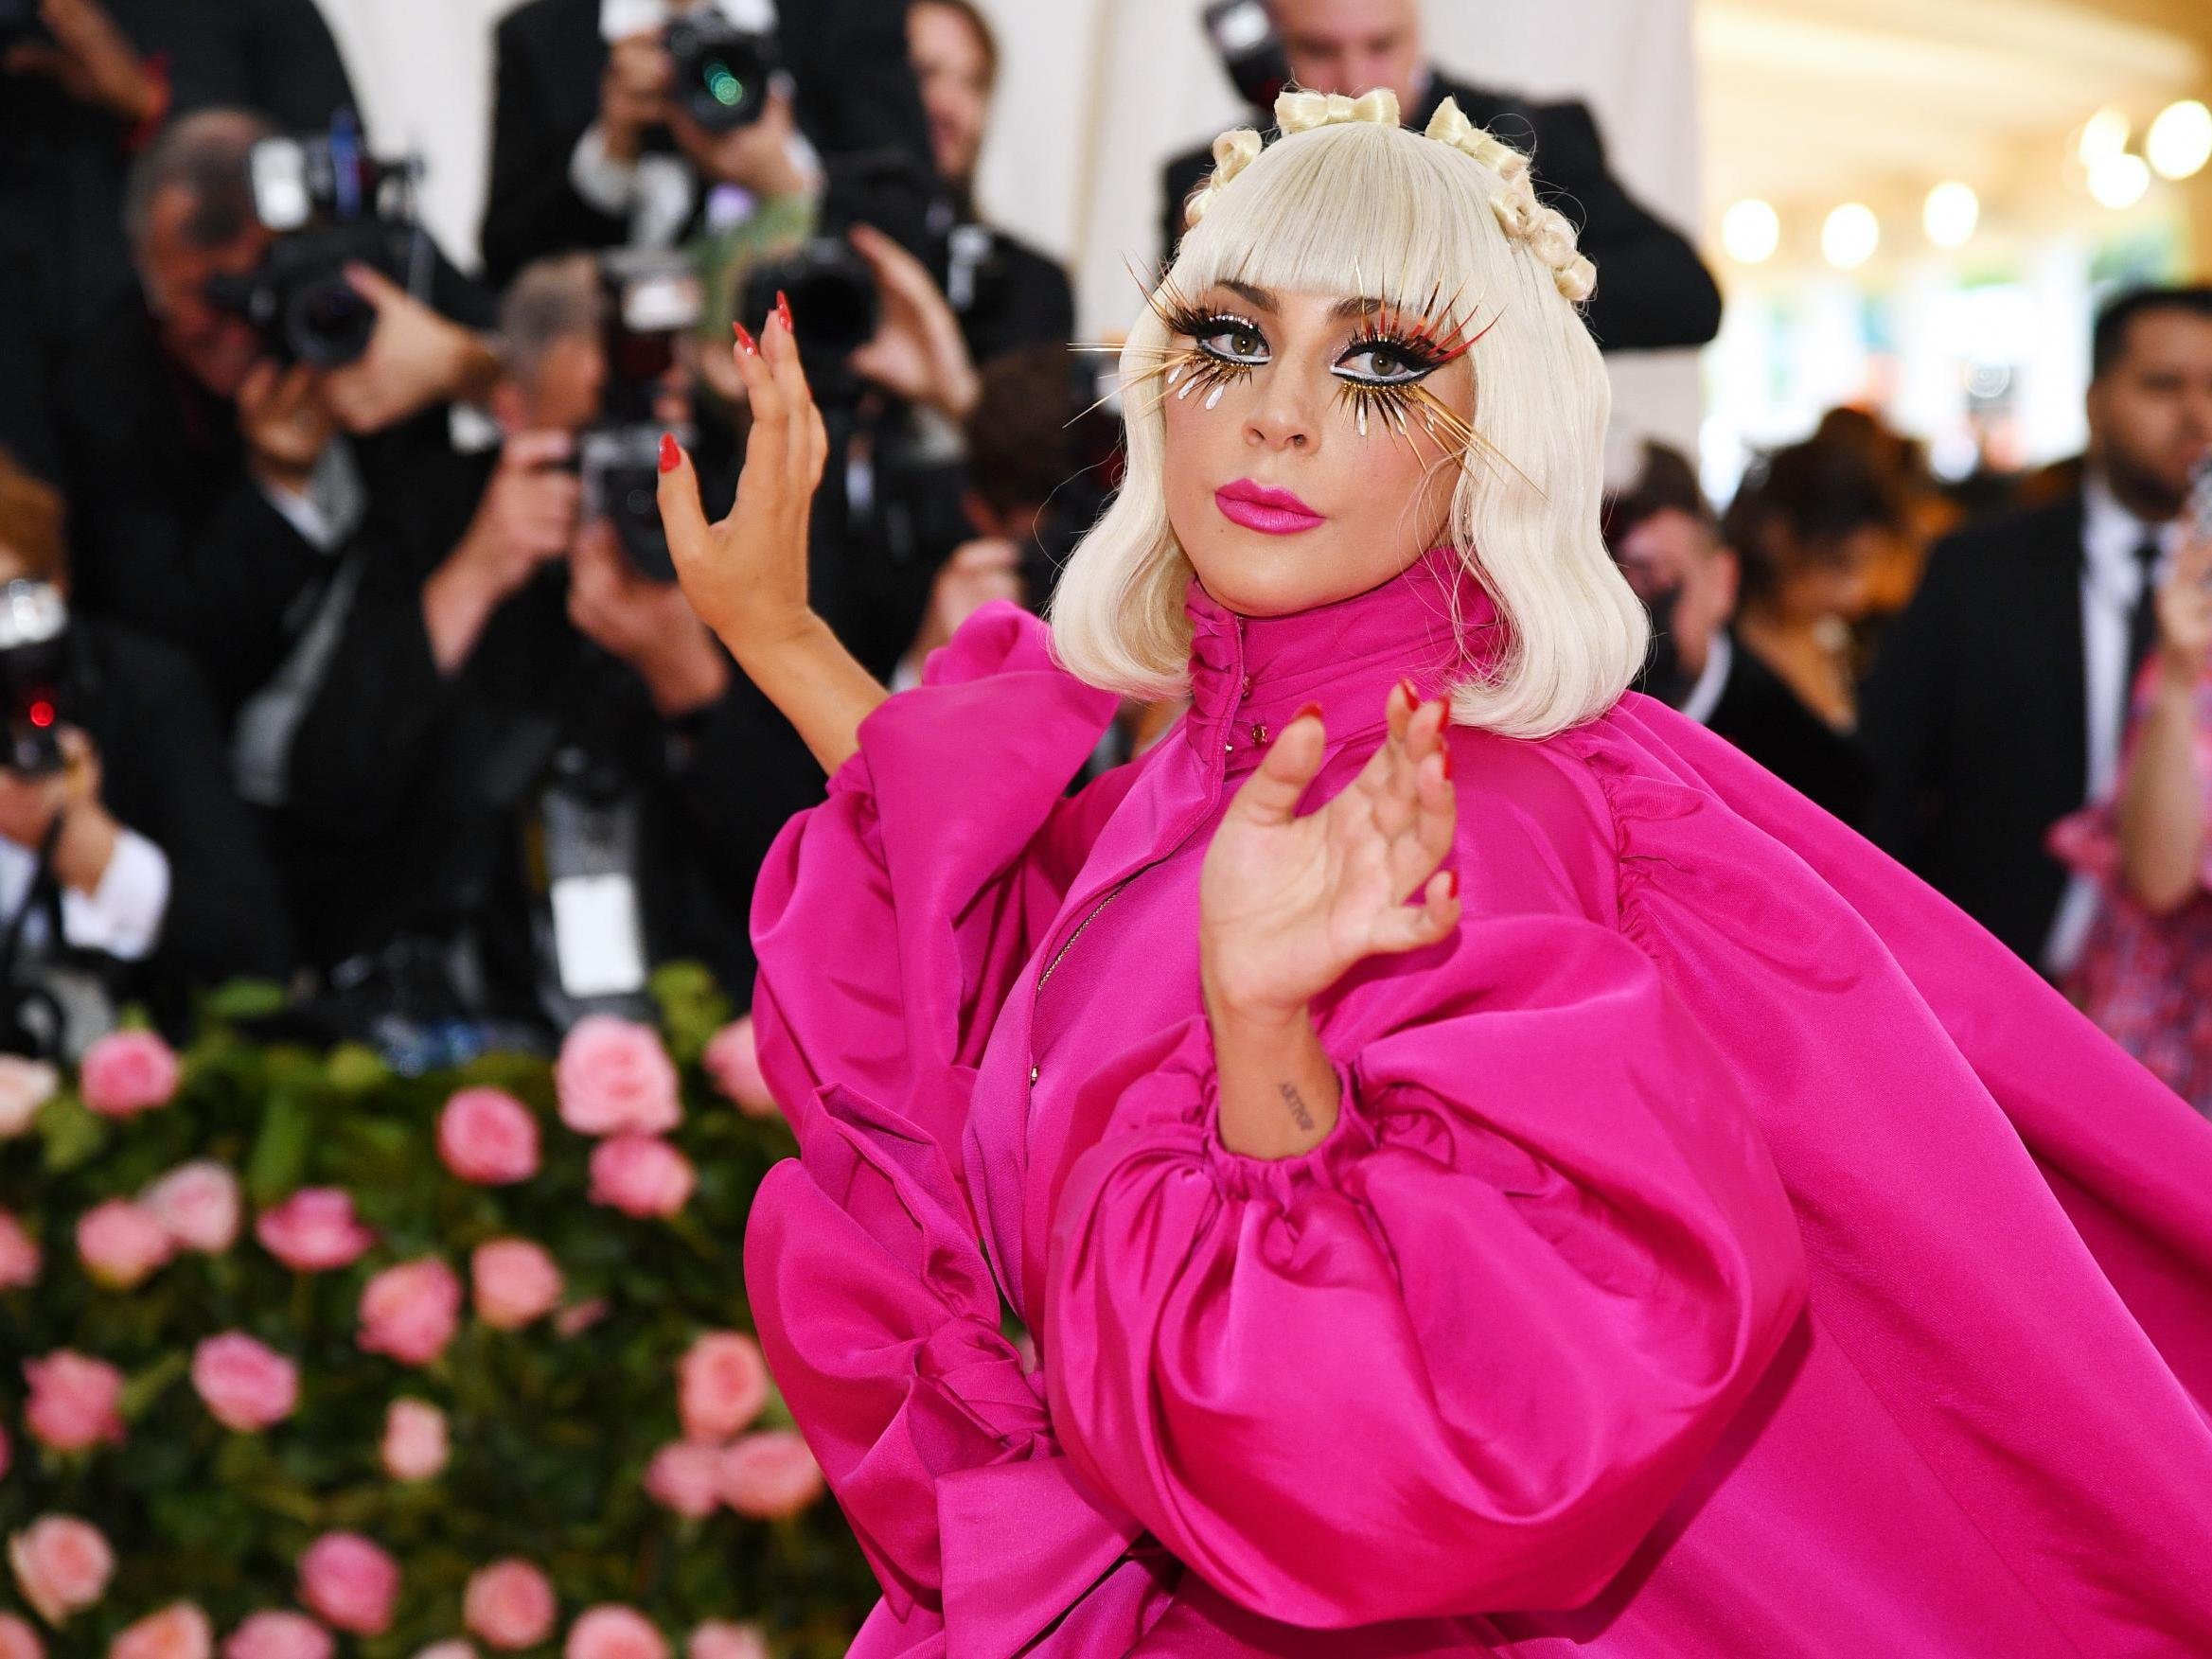 Lady Gaga - latest news, breaking stories and comment - The Independent